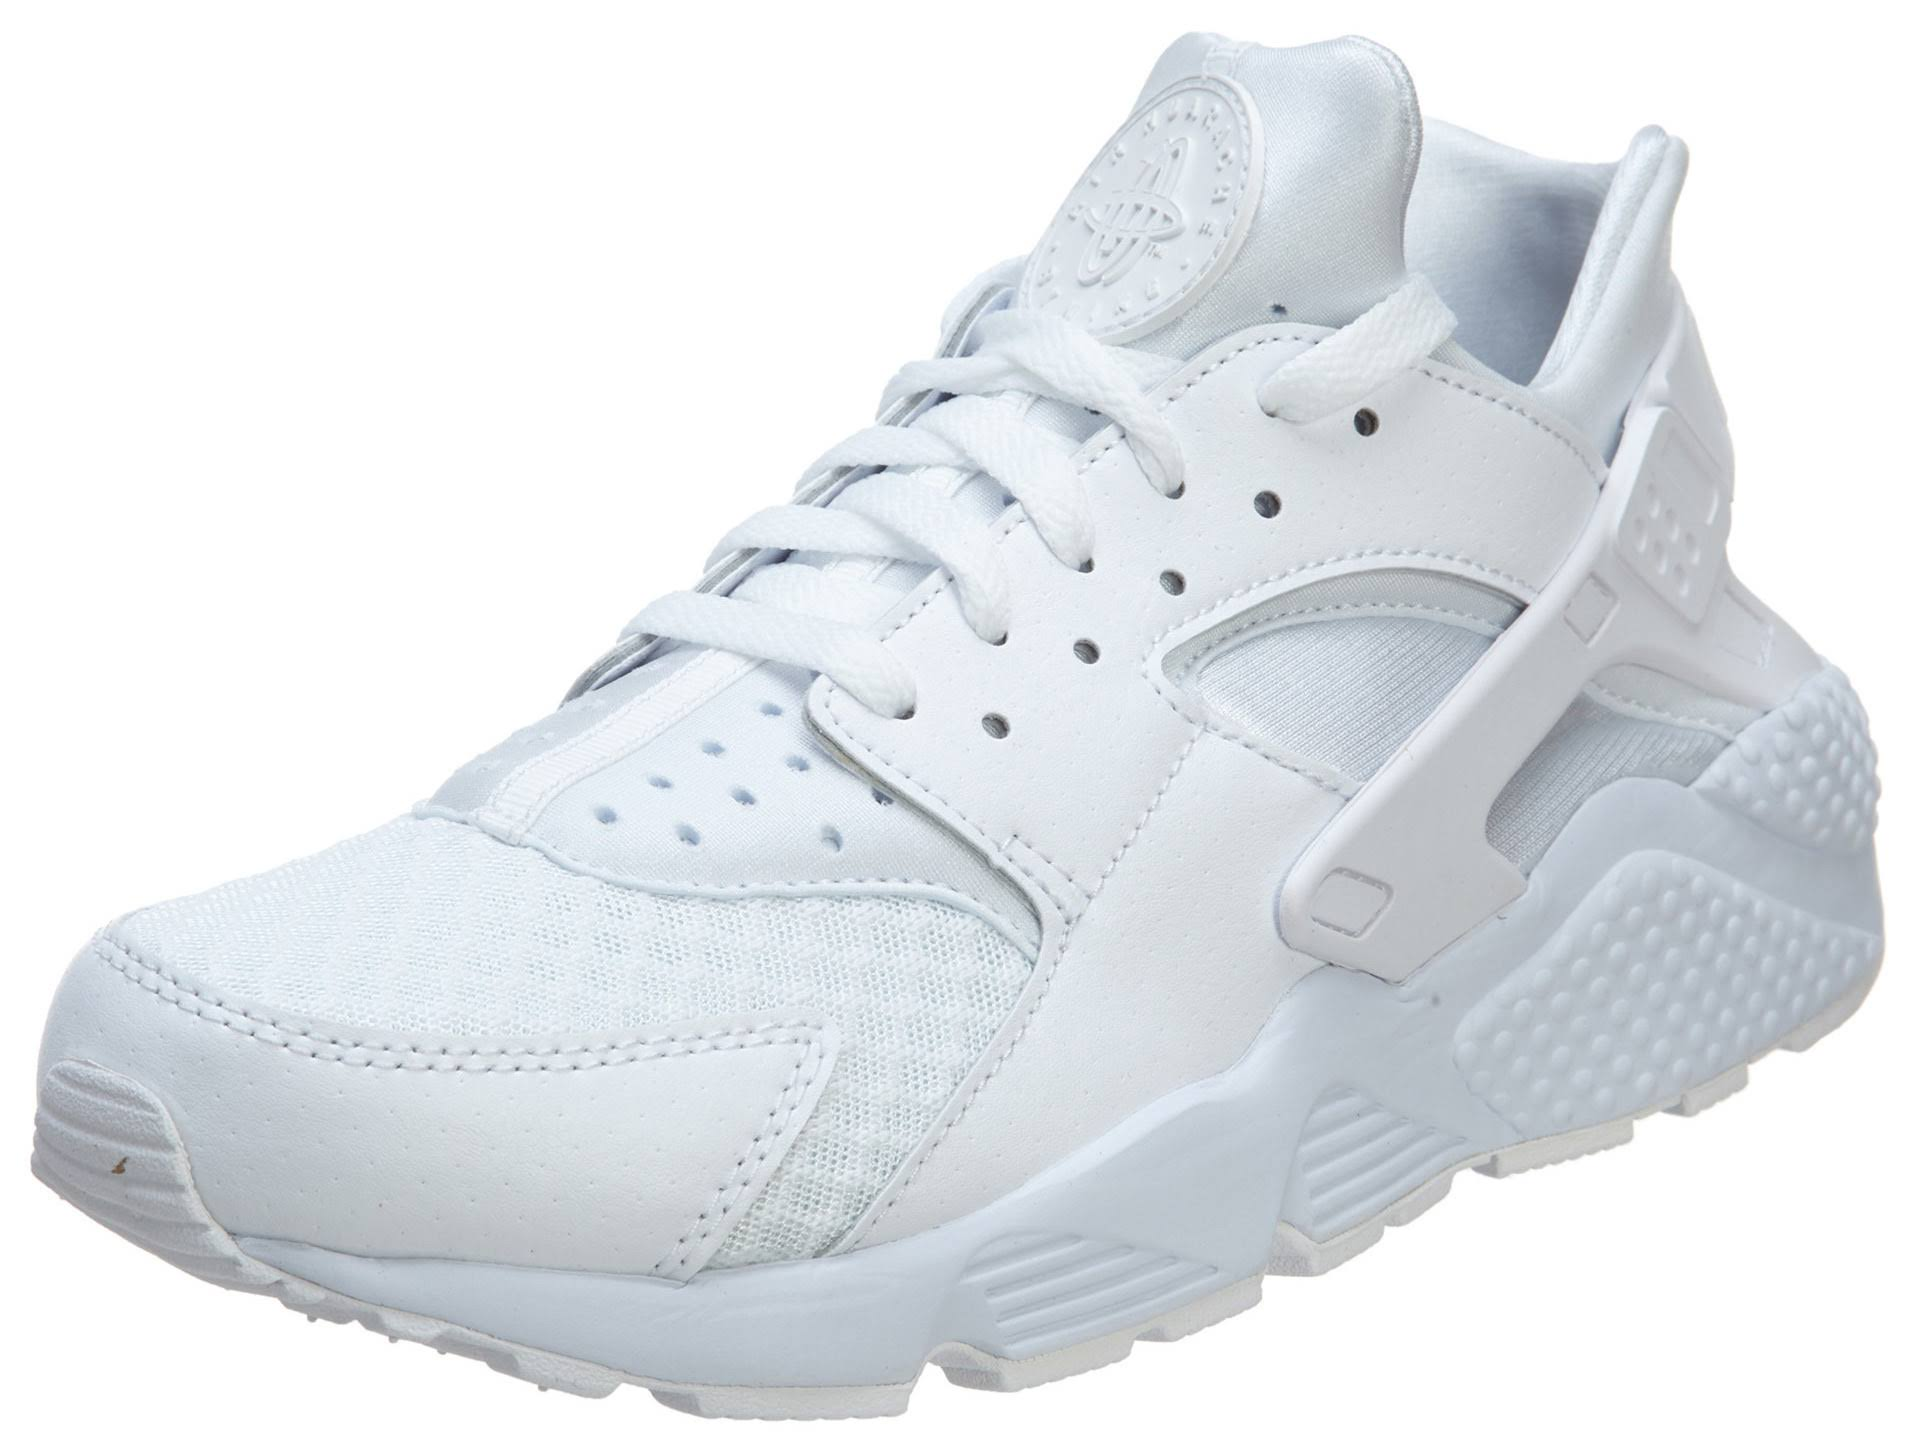 Nike Air Nike HuaracheBianco Air Air Nike Air HuaracheBianco Nike HuaracheBianco TcK1JlF